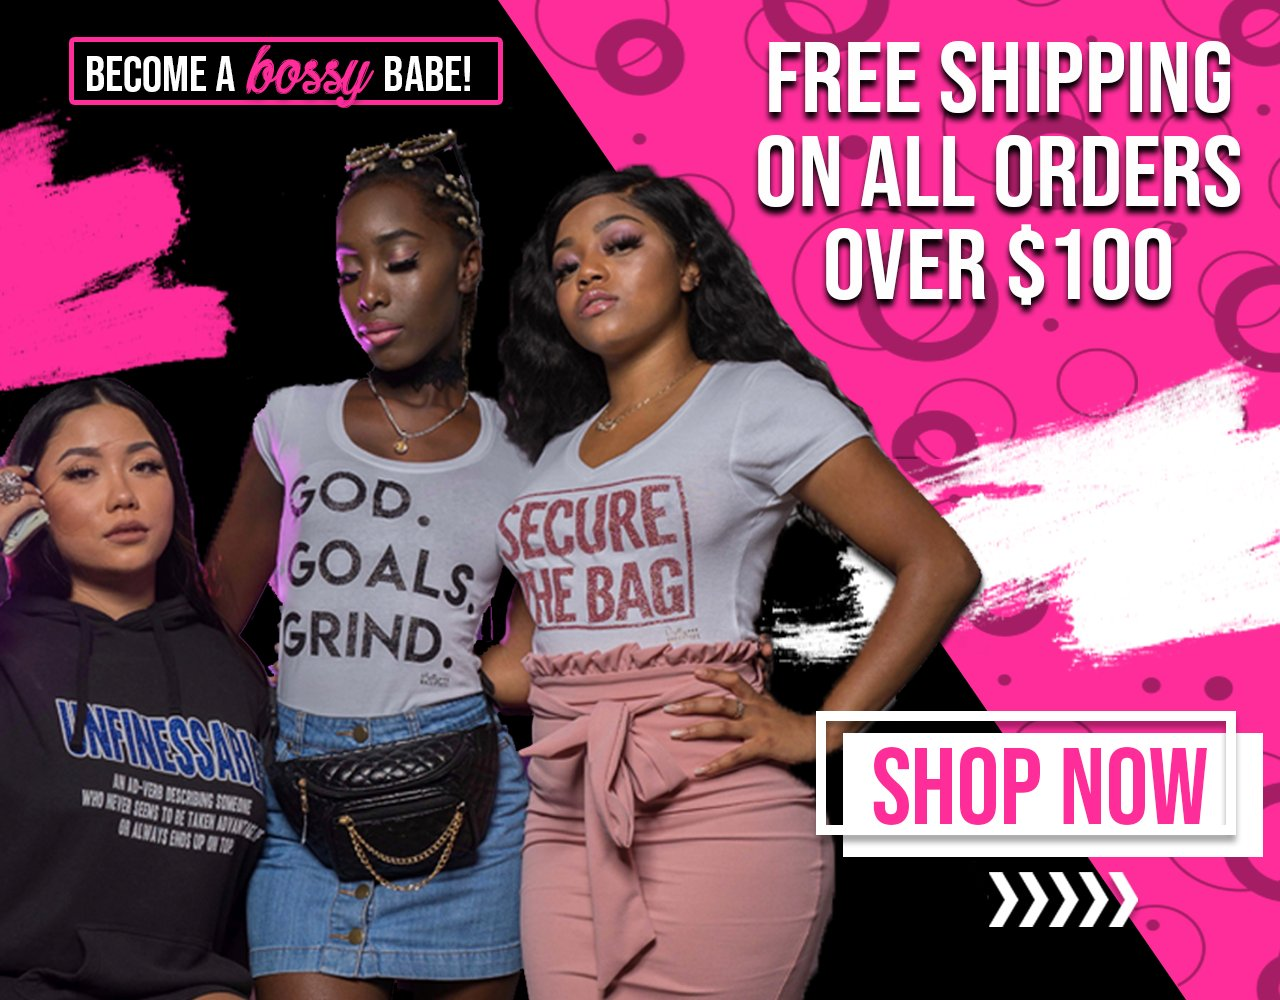 Free Shipping On All Orders $100 and Up.